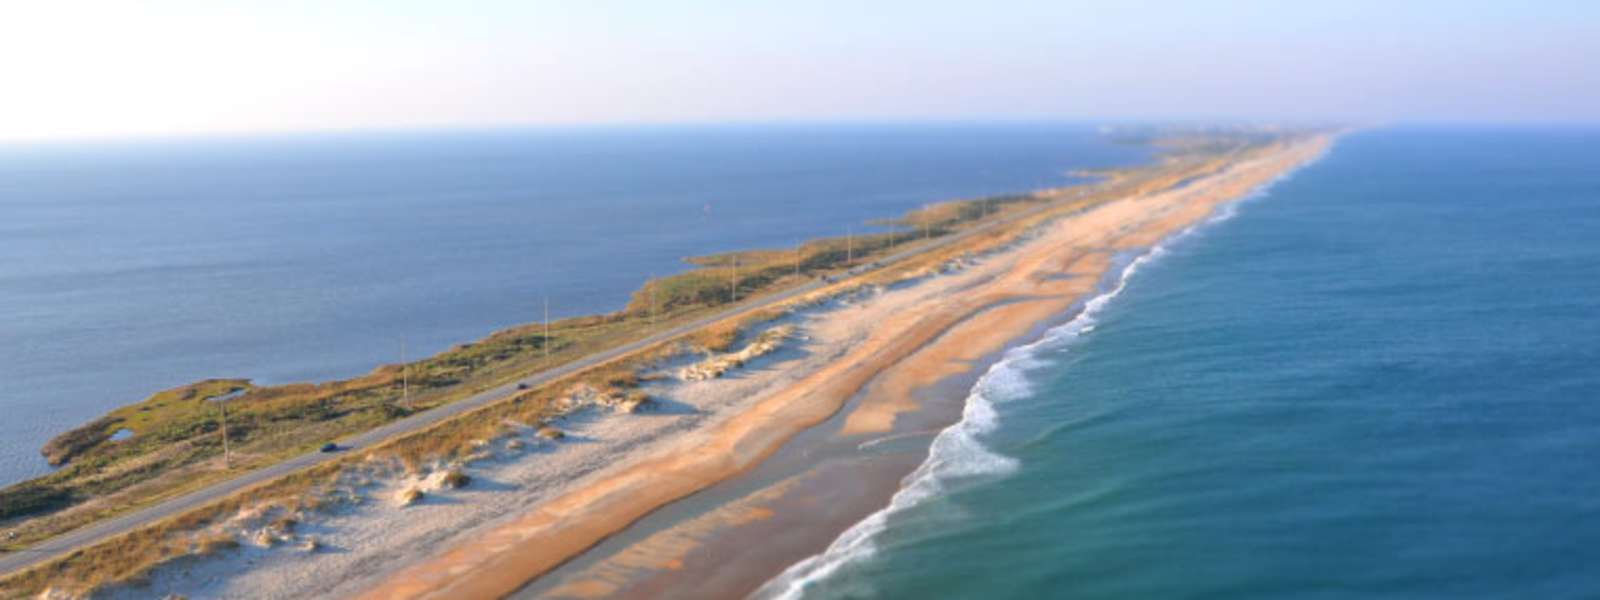 Hatteras The Outer Banks Nc Vacations Beach Als Motels Things To Do North Carolina